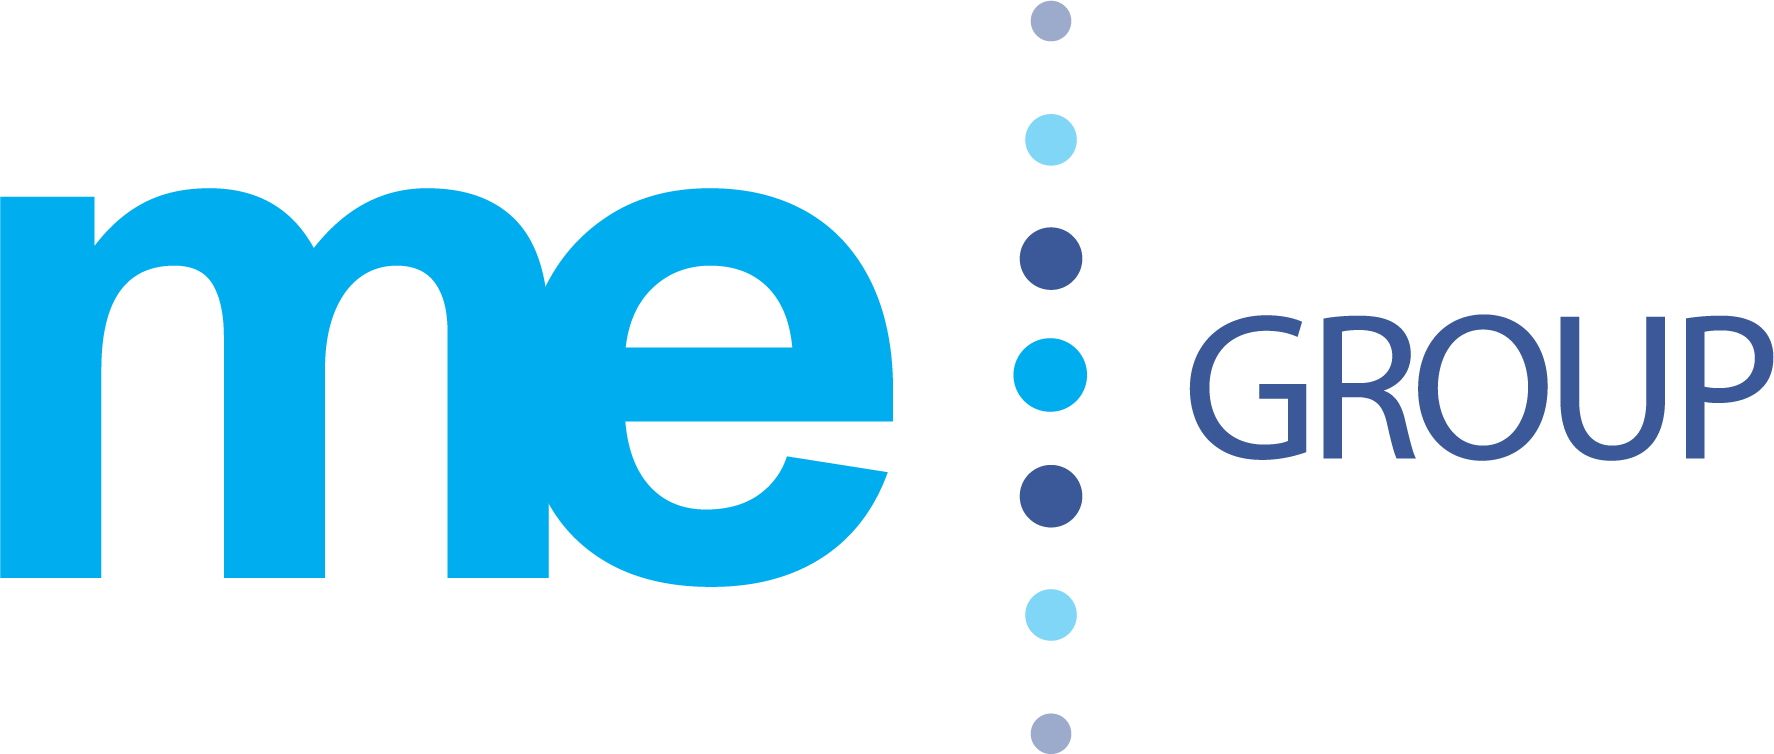 ME-Group-logo-x.png